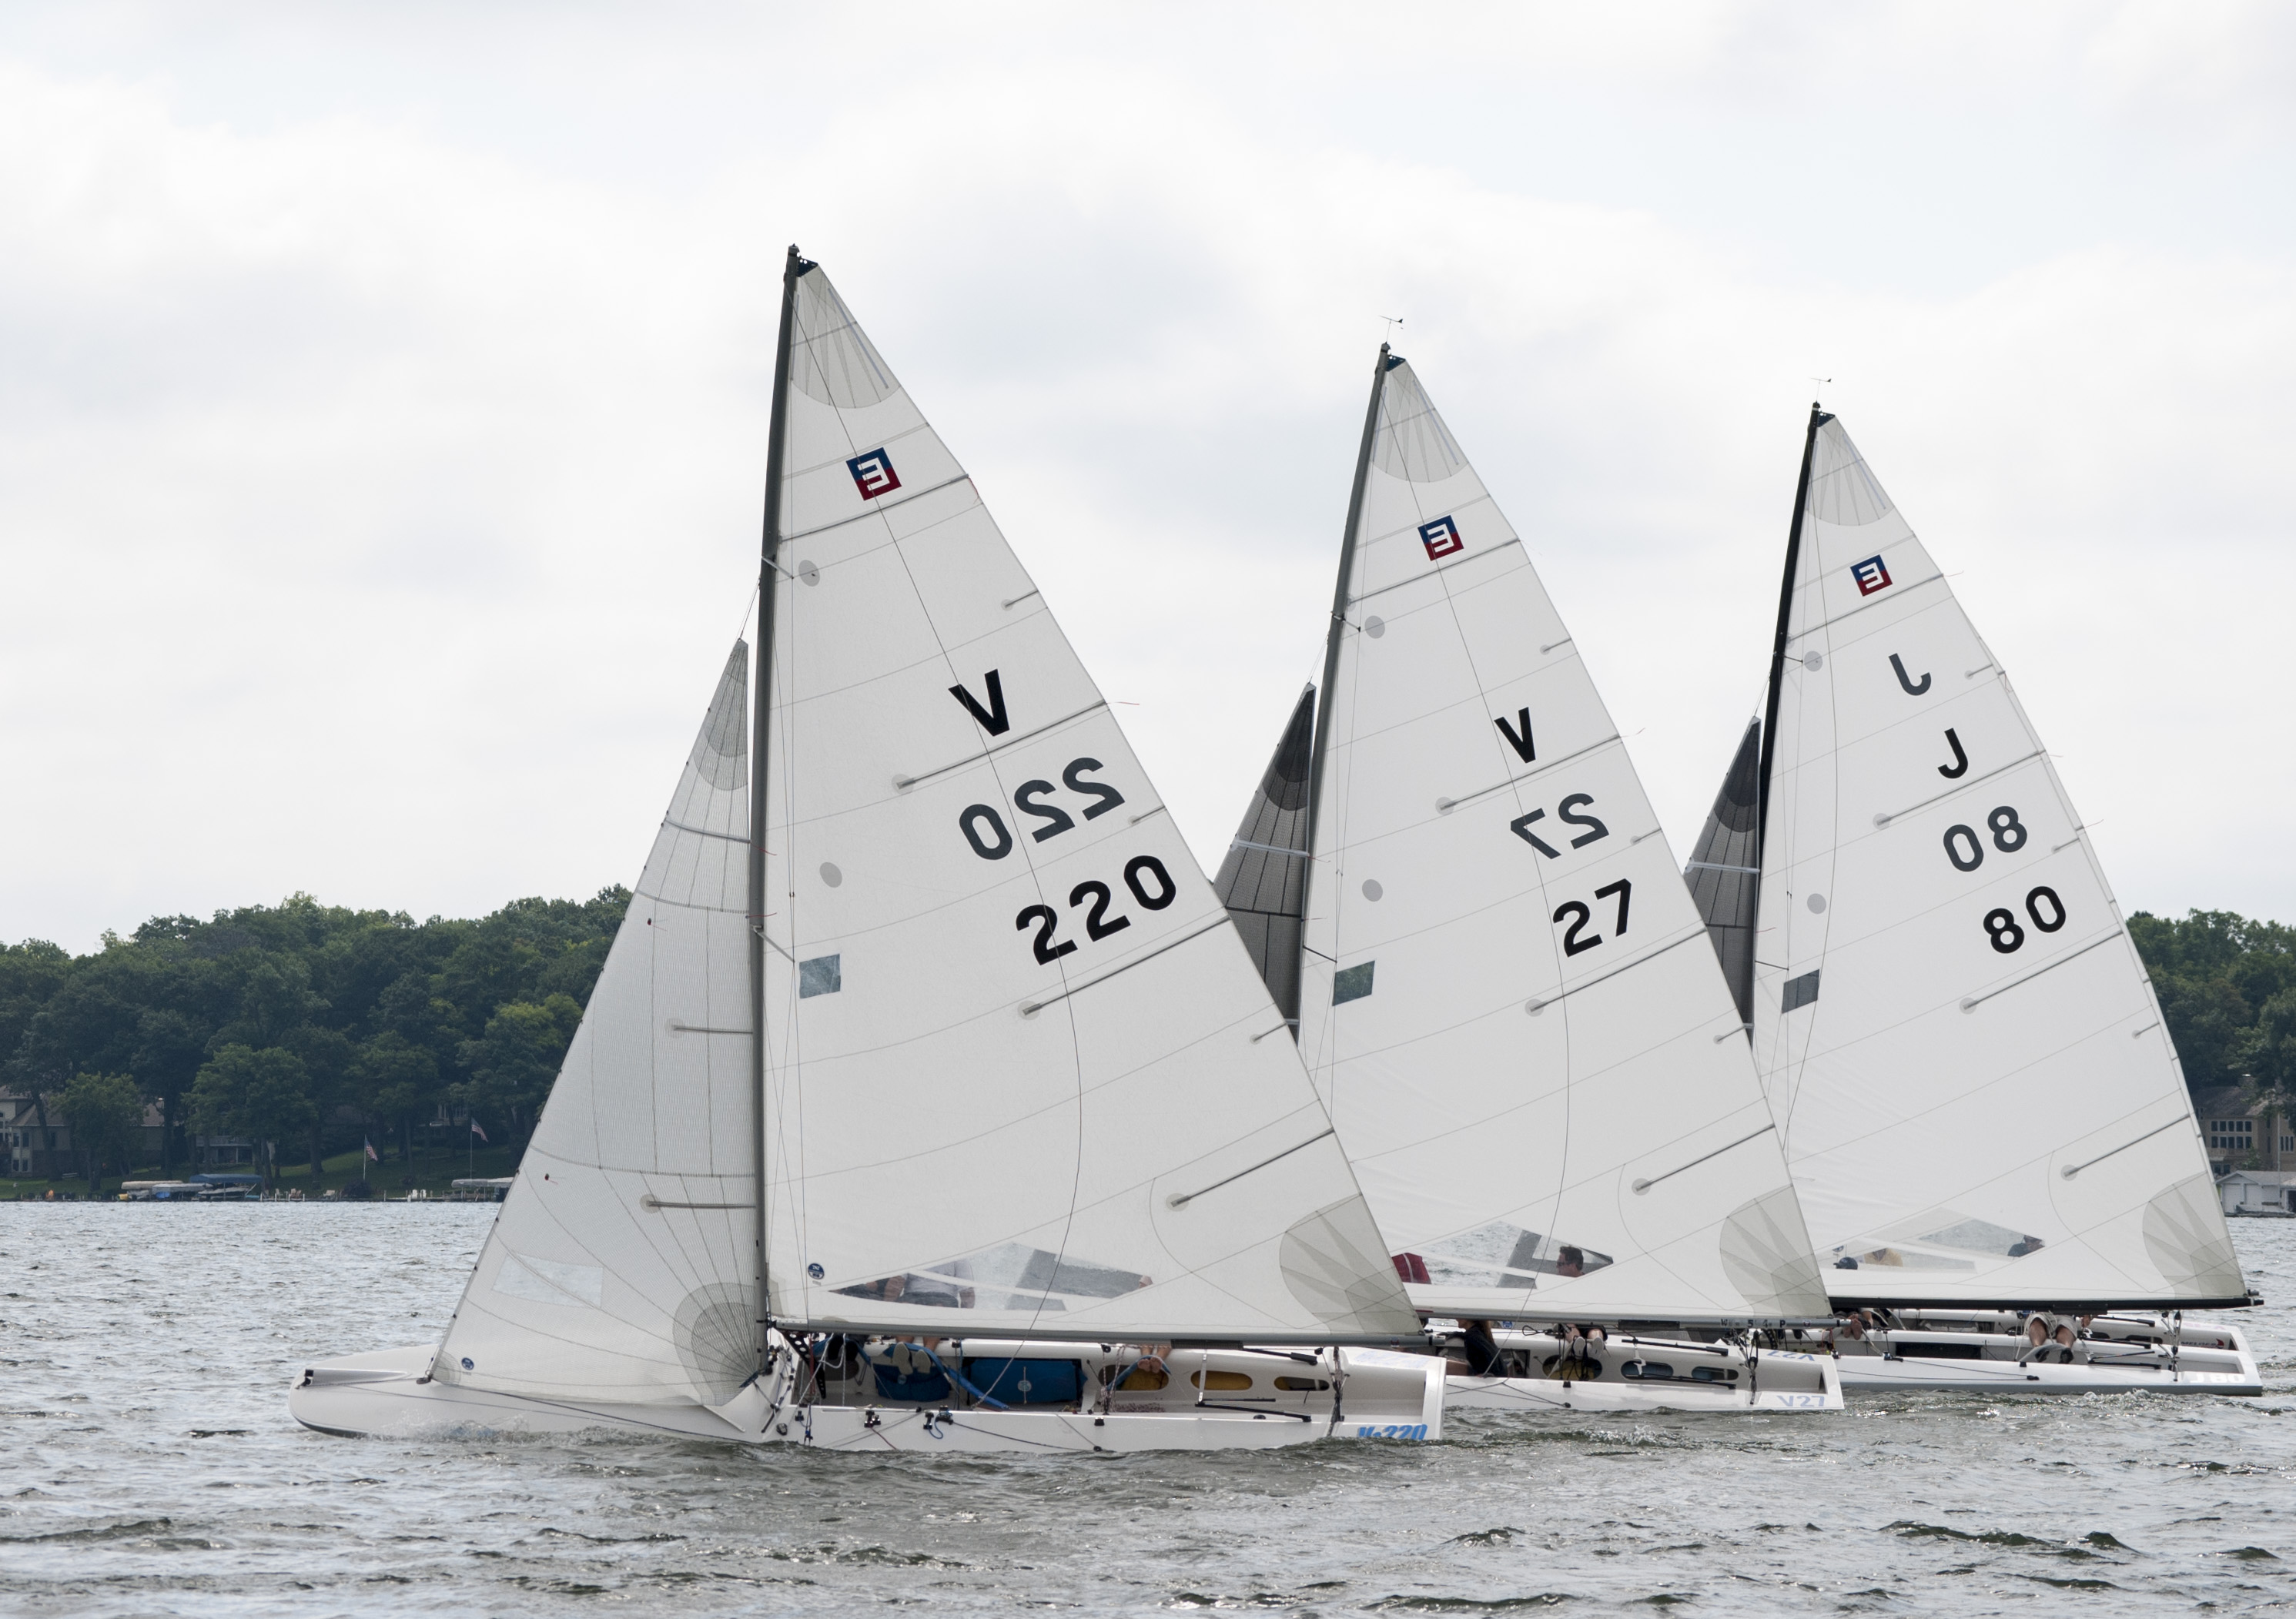 2017 E Scow ILYA Invitational North Sails